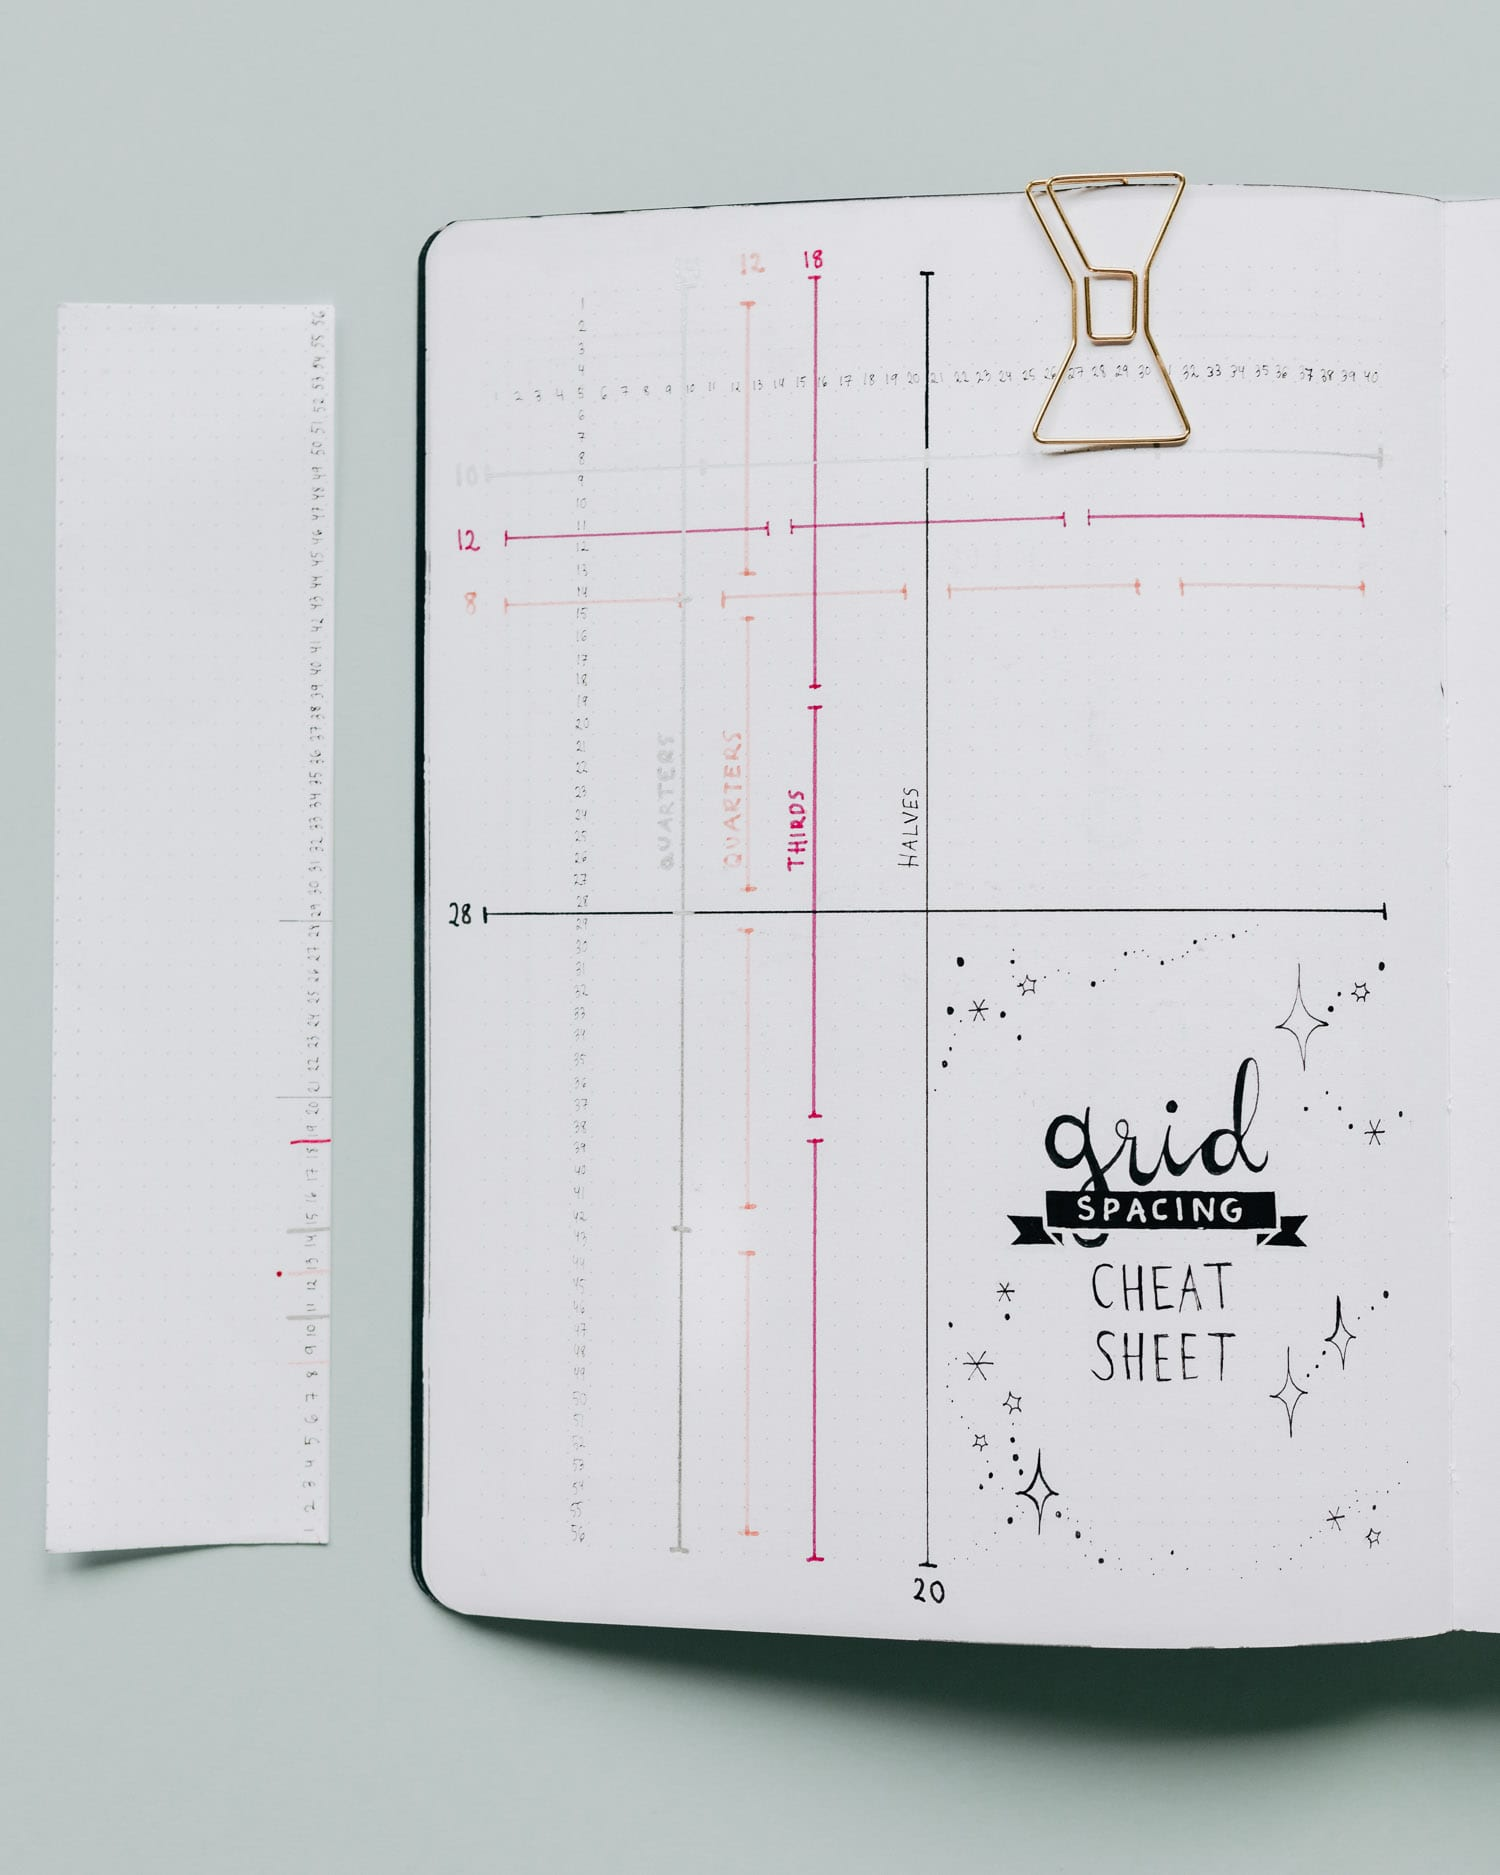 Bullet Journal Grid Spacing Cheat Sheet